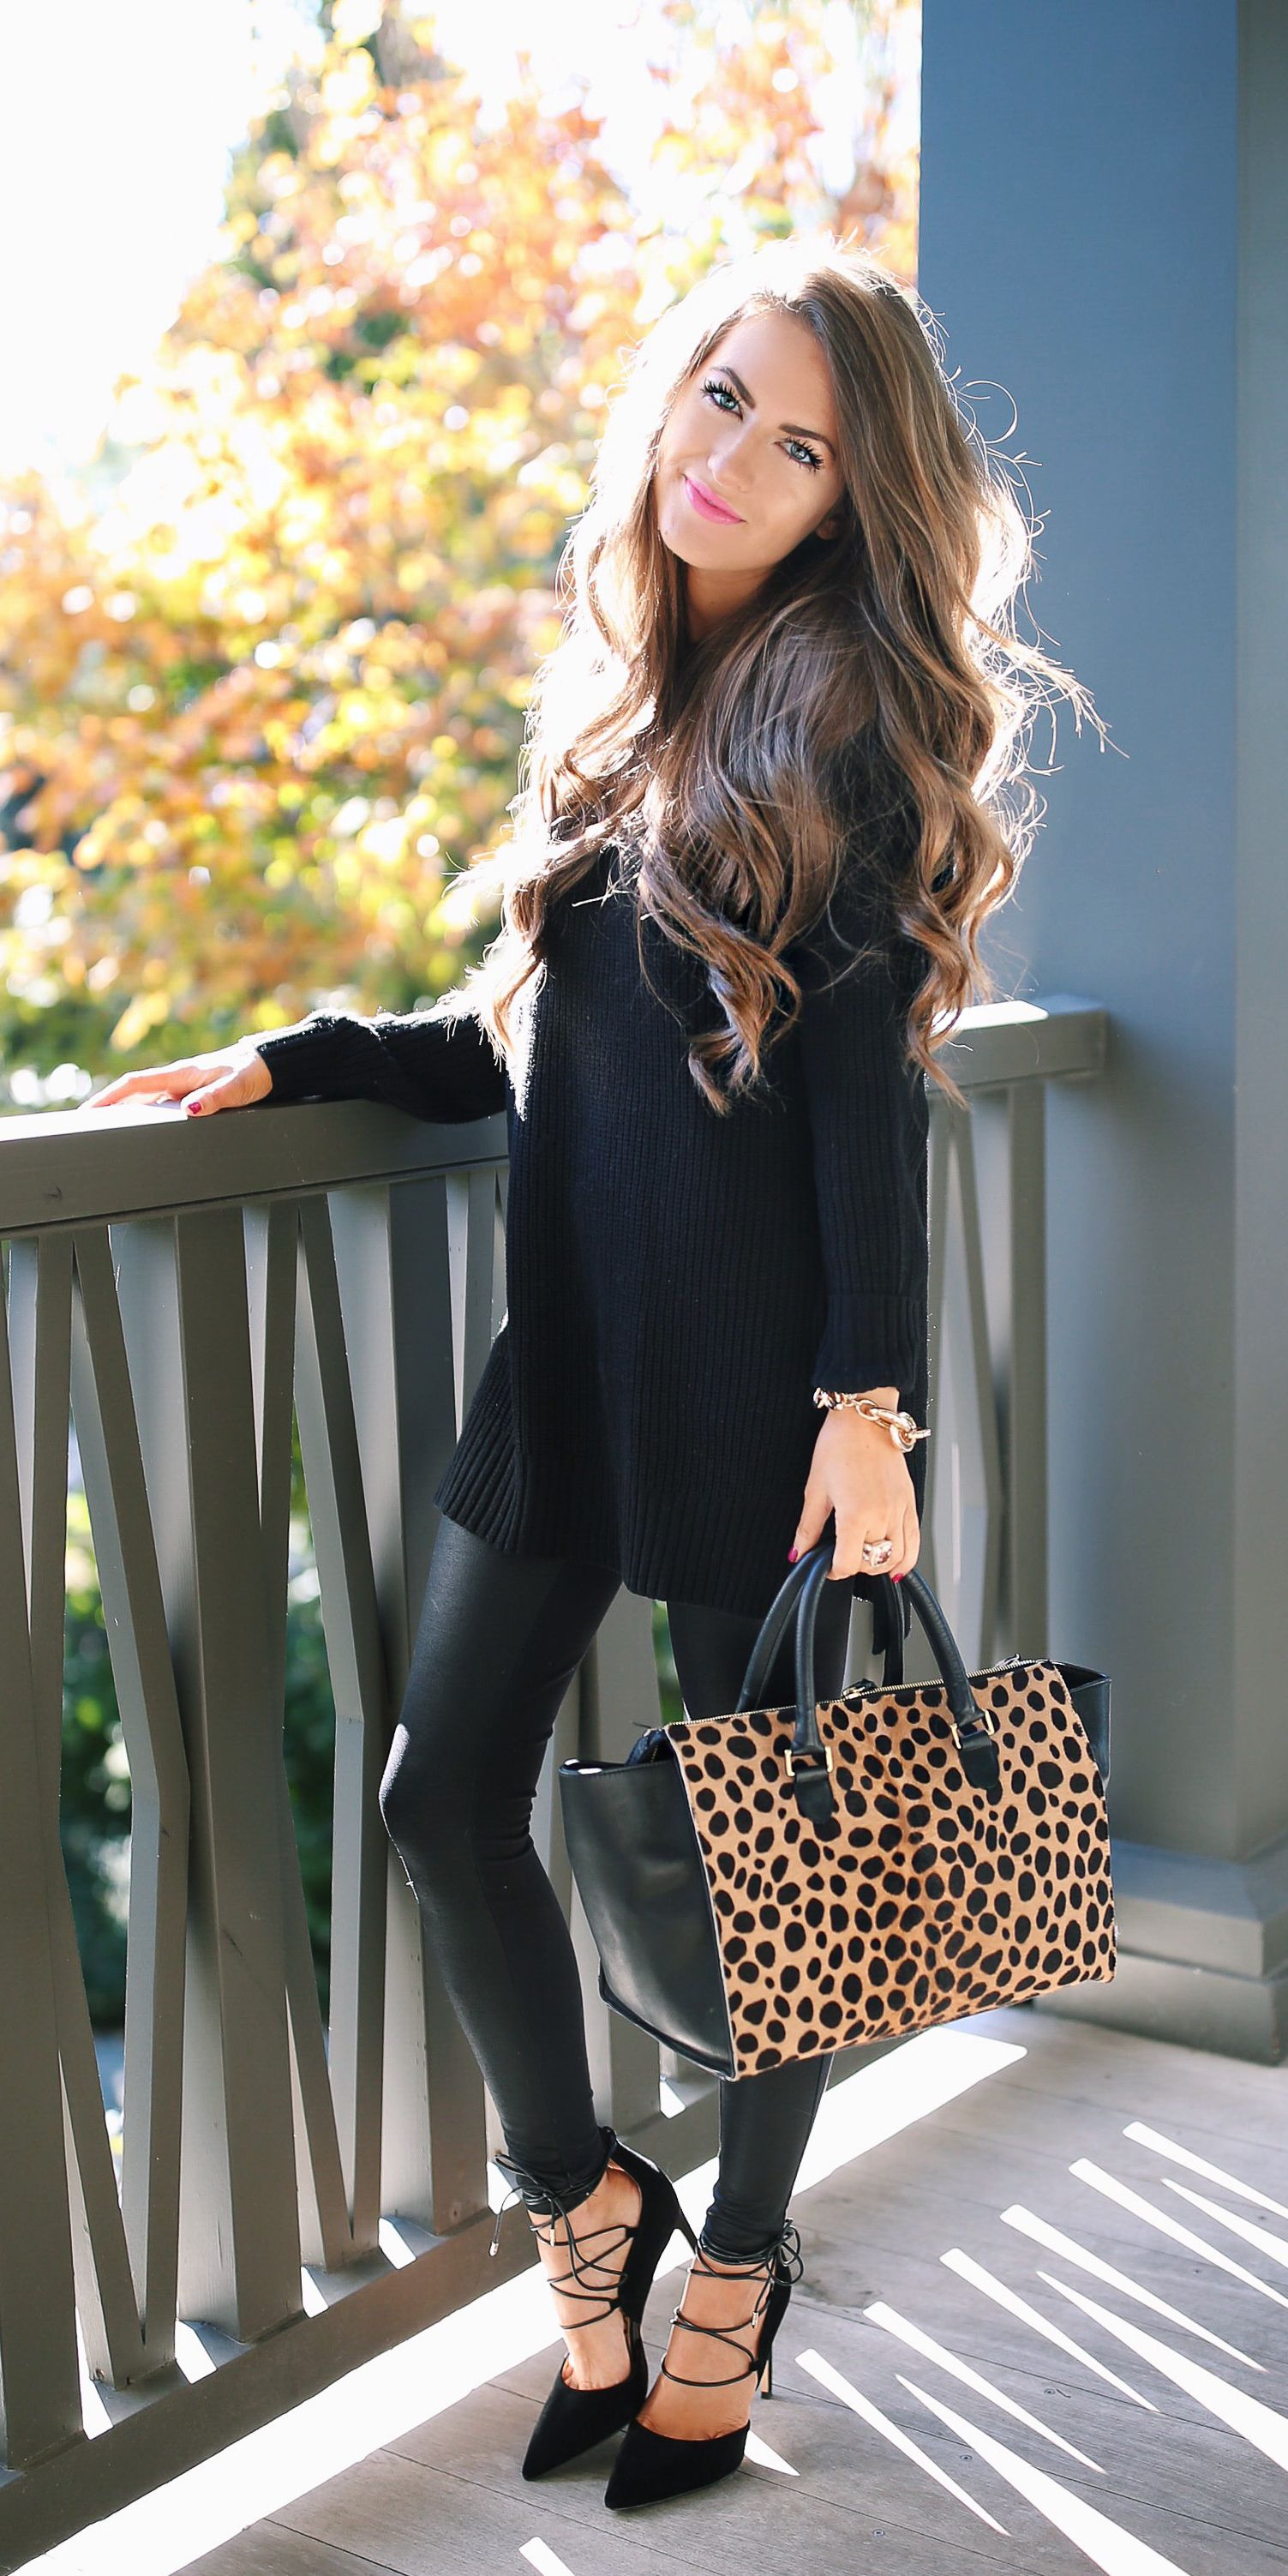 leggings outfit Leather